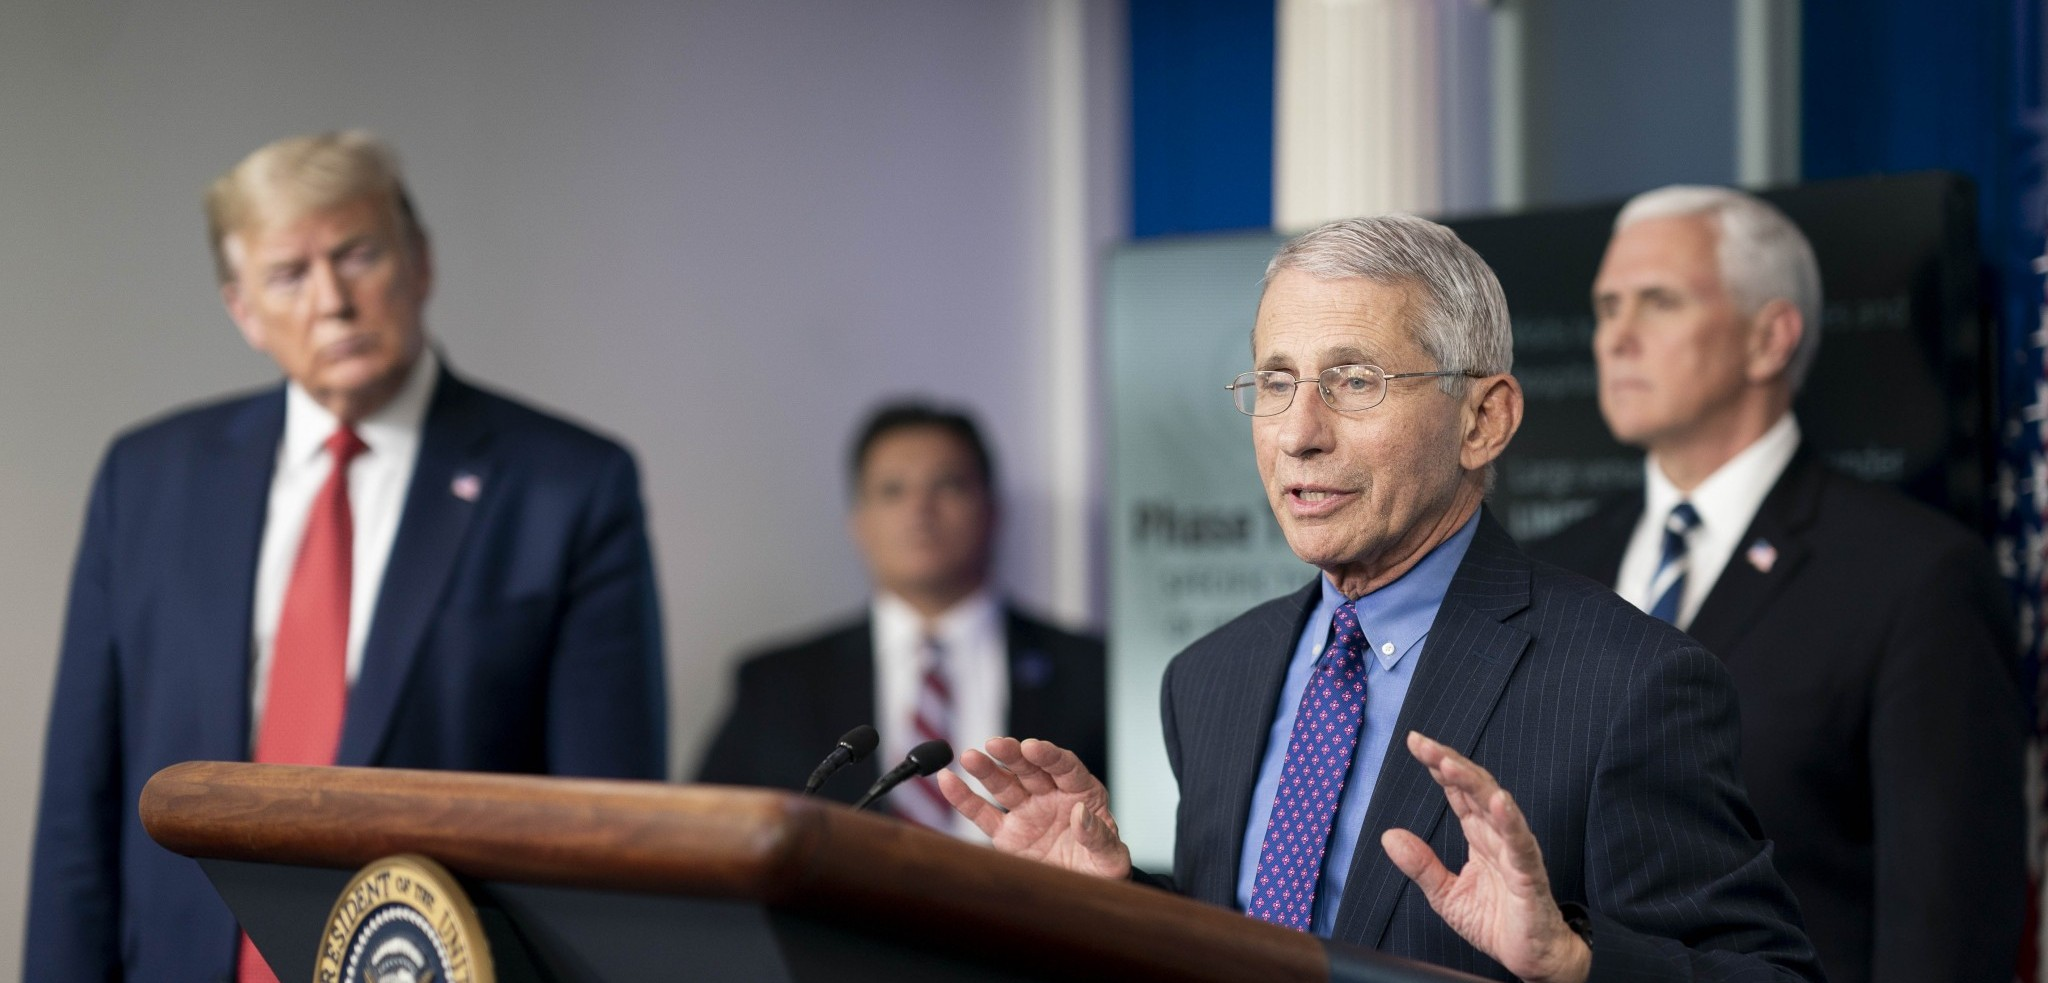 This Is Why Fauci Needed to Go | The American Spectator | USA News and PoliticsThe American Spectator | USA News and Politics